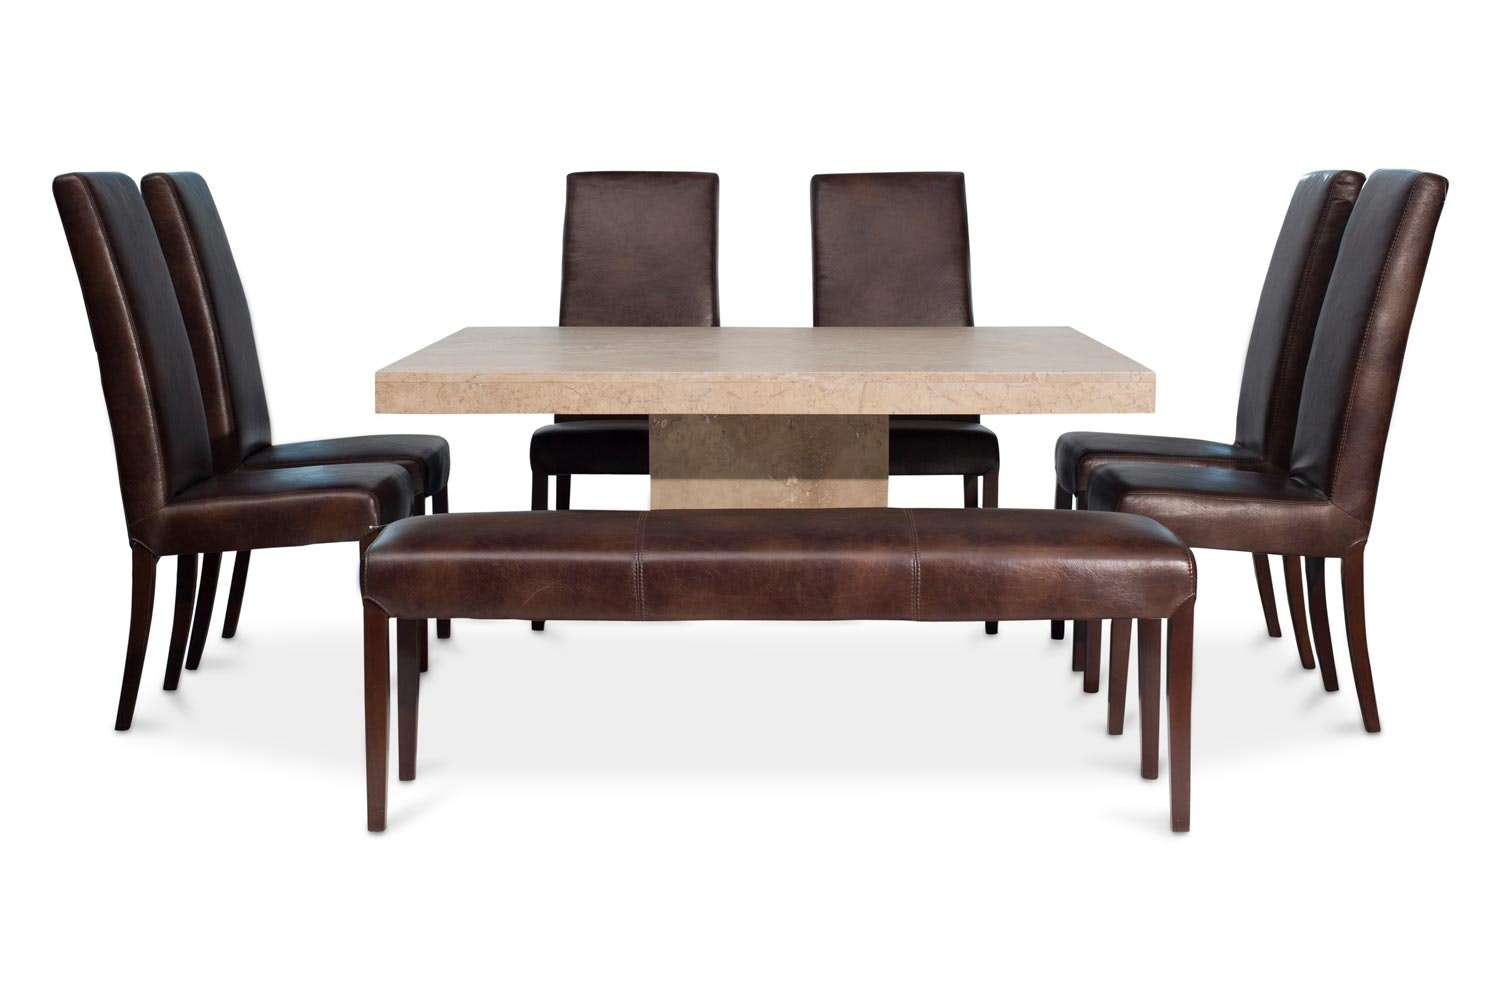 Vigo Dining Set with 6 Armstrong Chairs and Bench | 7 Pieces